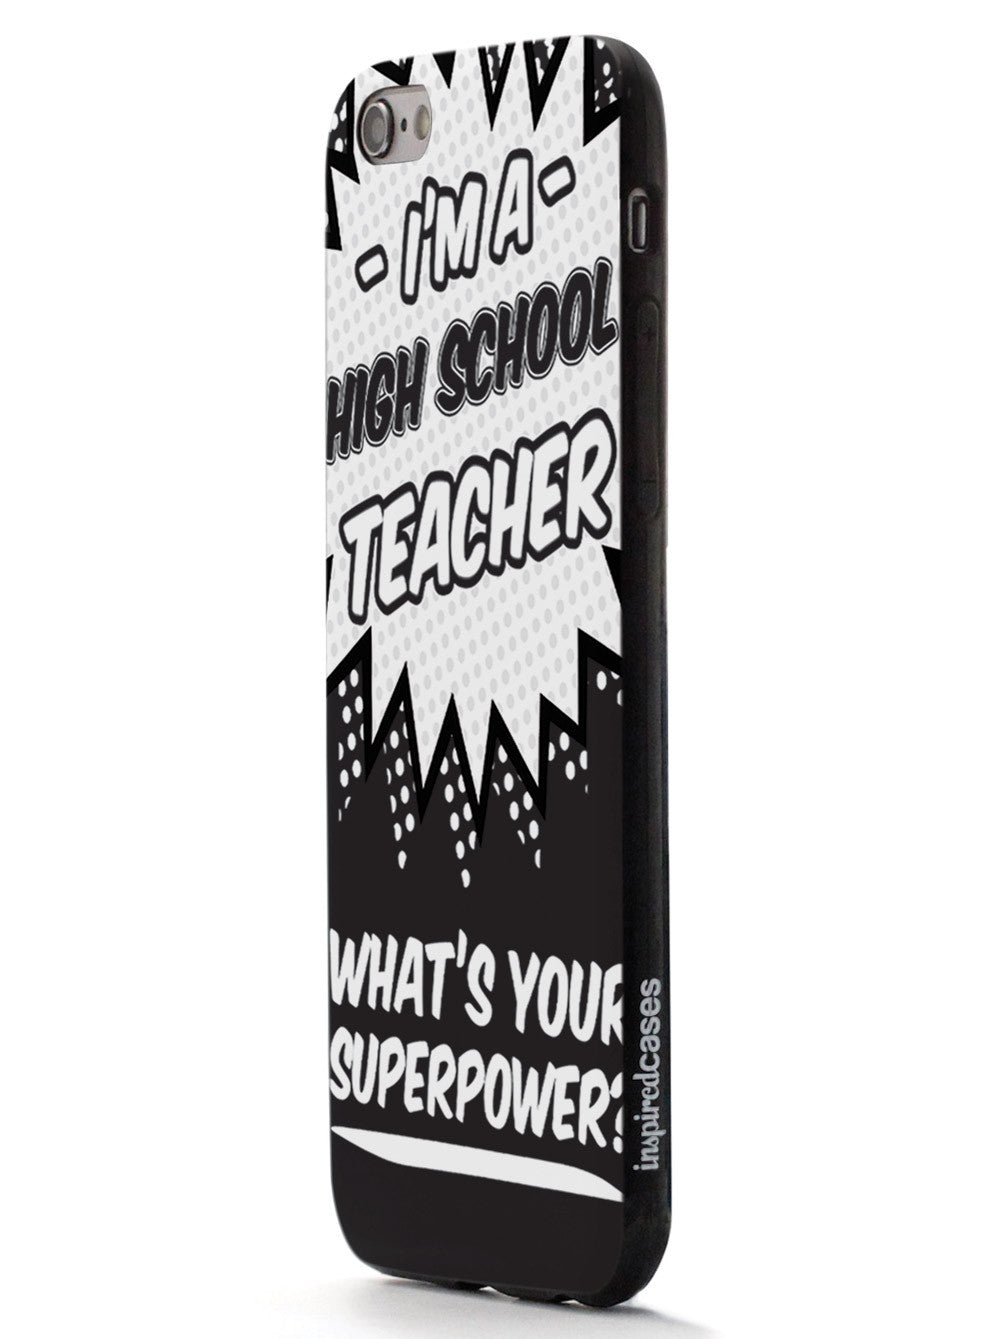 High School Teacher - What's Your Superpower? Case